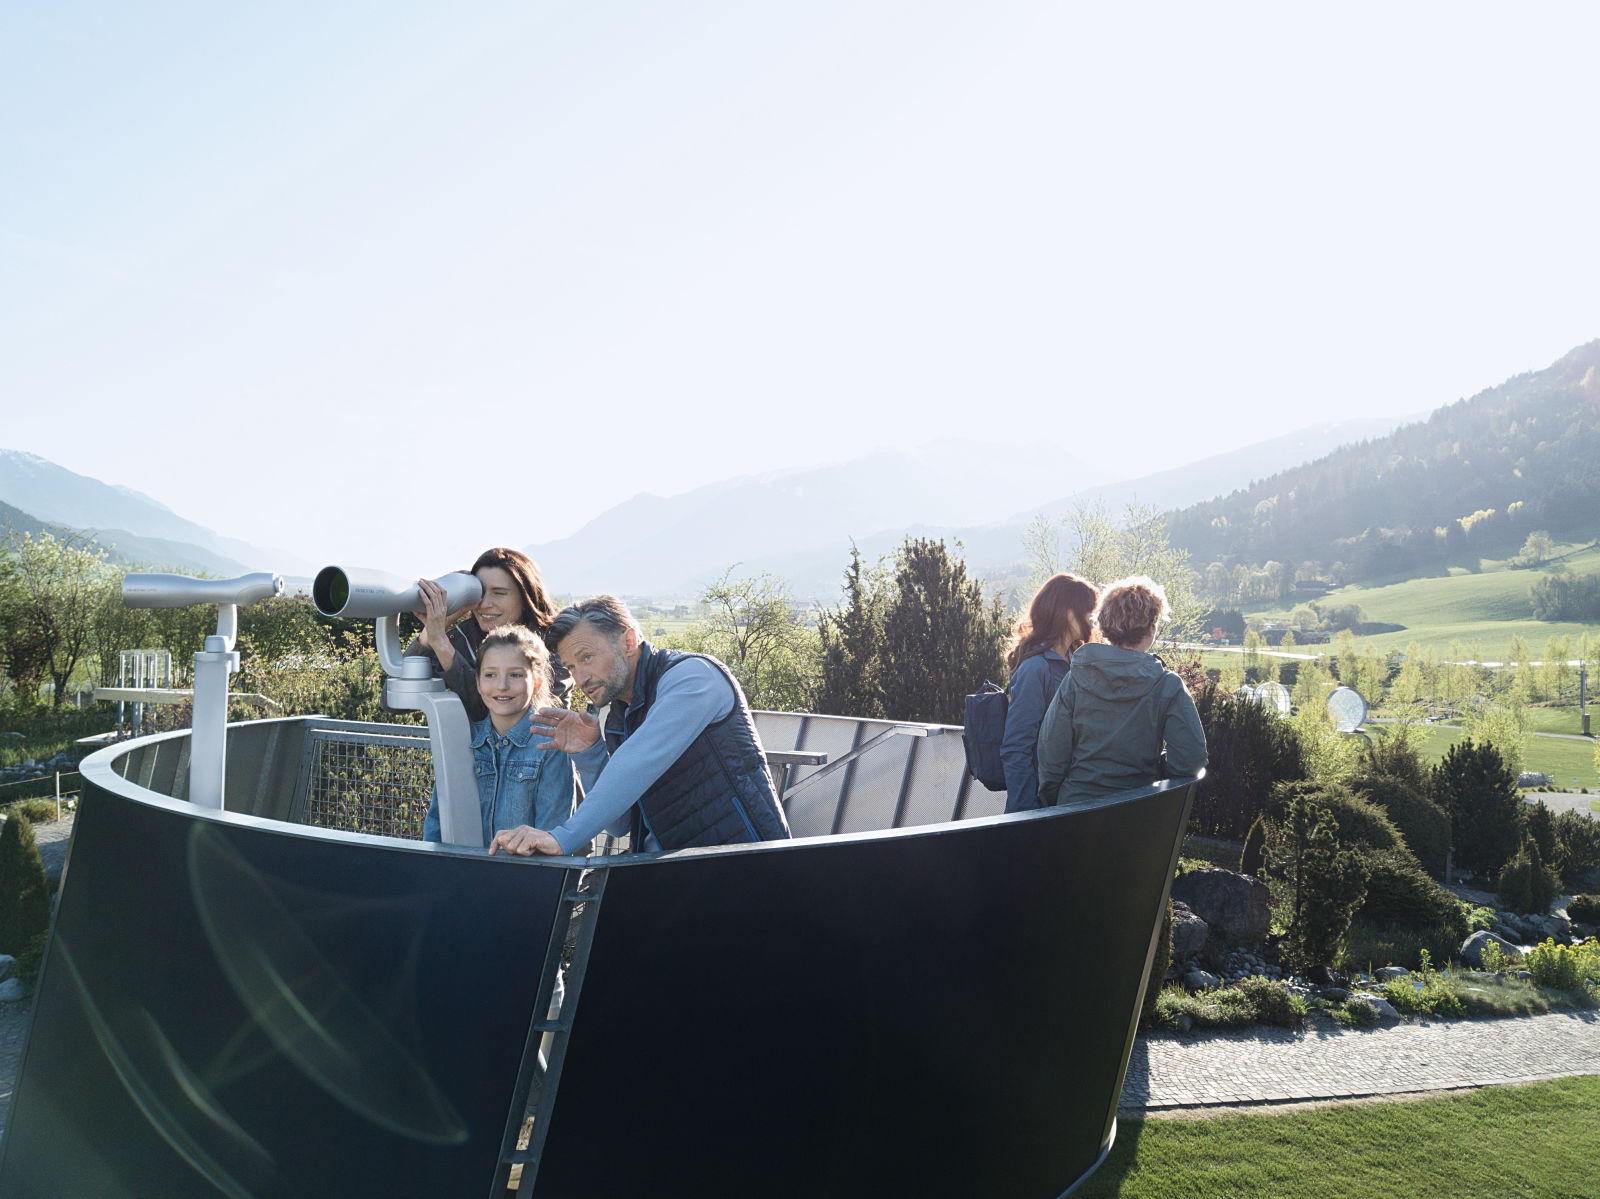 Visitors at Swarovski Crystal Worlds in Wattens, Tyrol can enjoy the breathtaking view through two ST Vista outdoor spotting scopes.